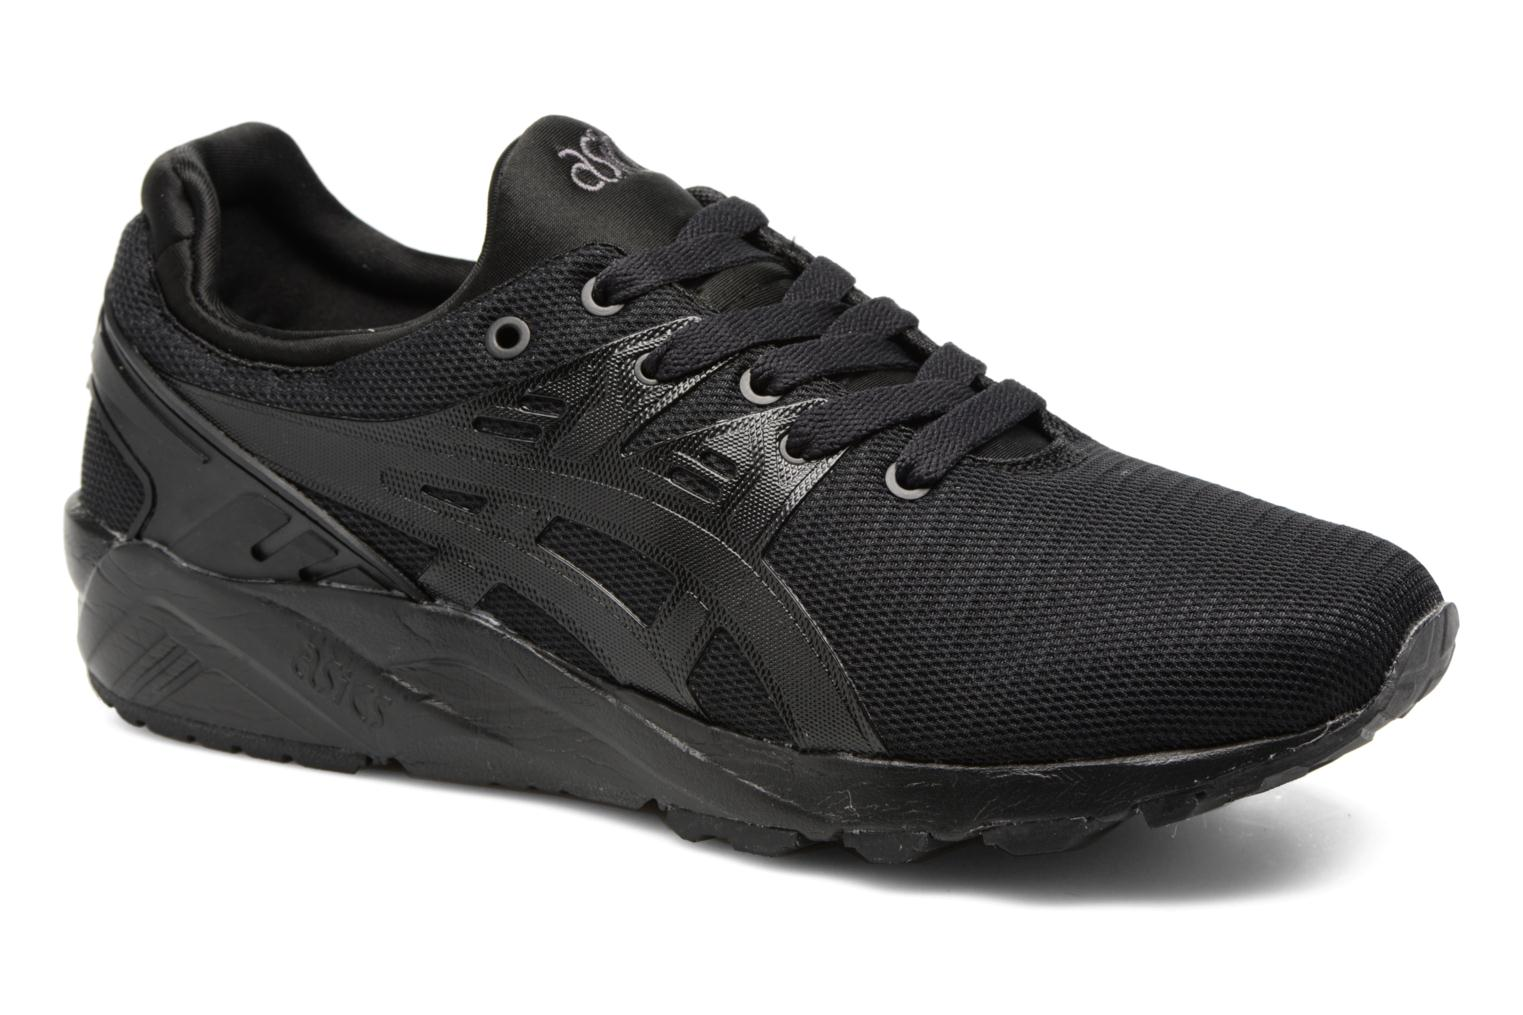 Gel Kayano Trainer EVO GS by Asics